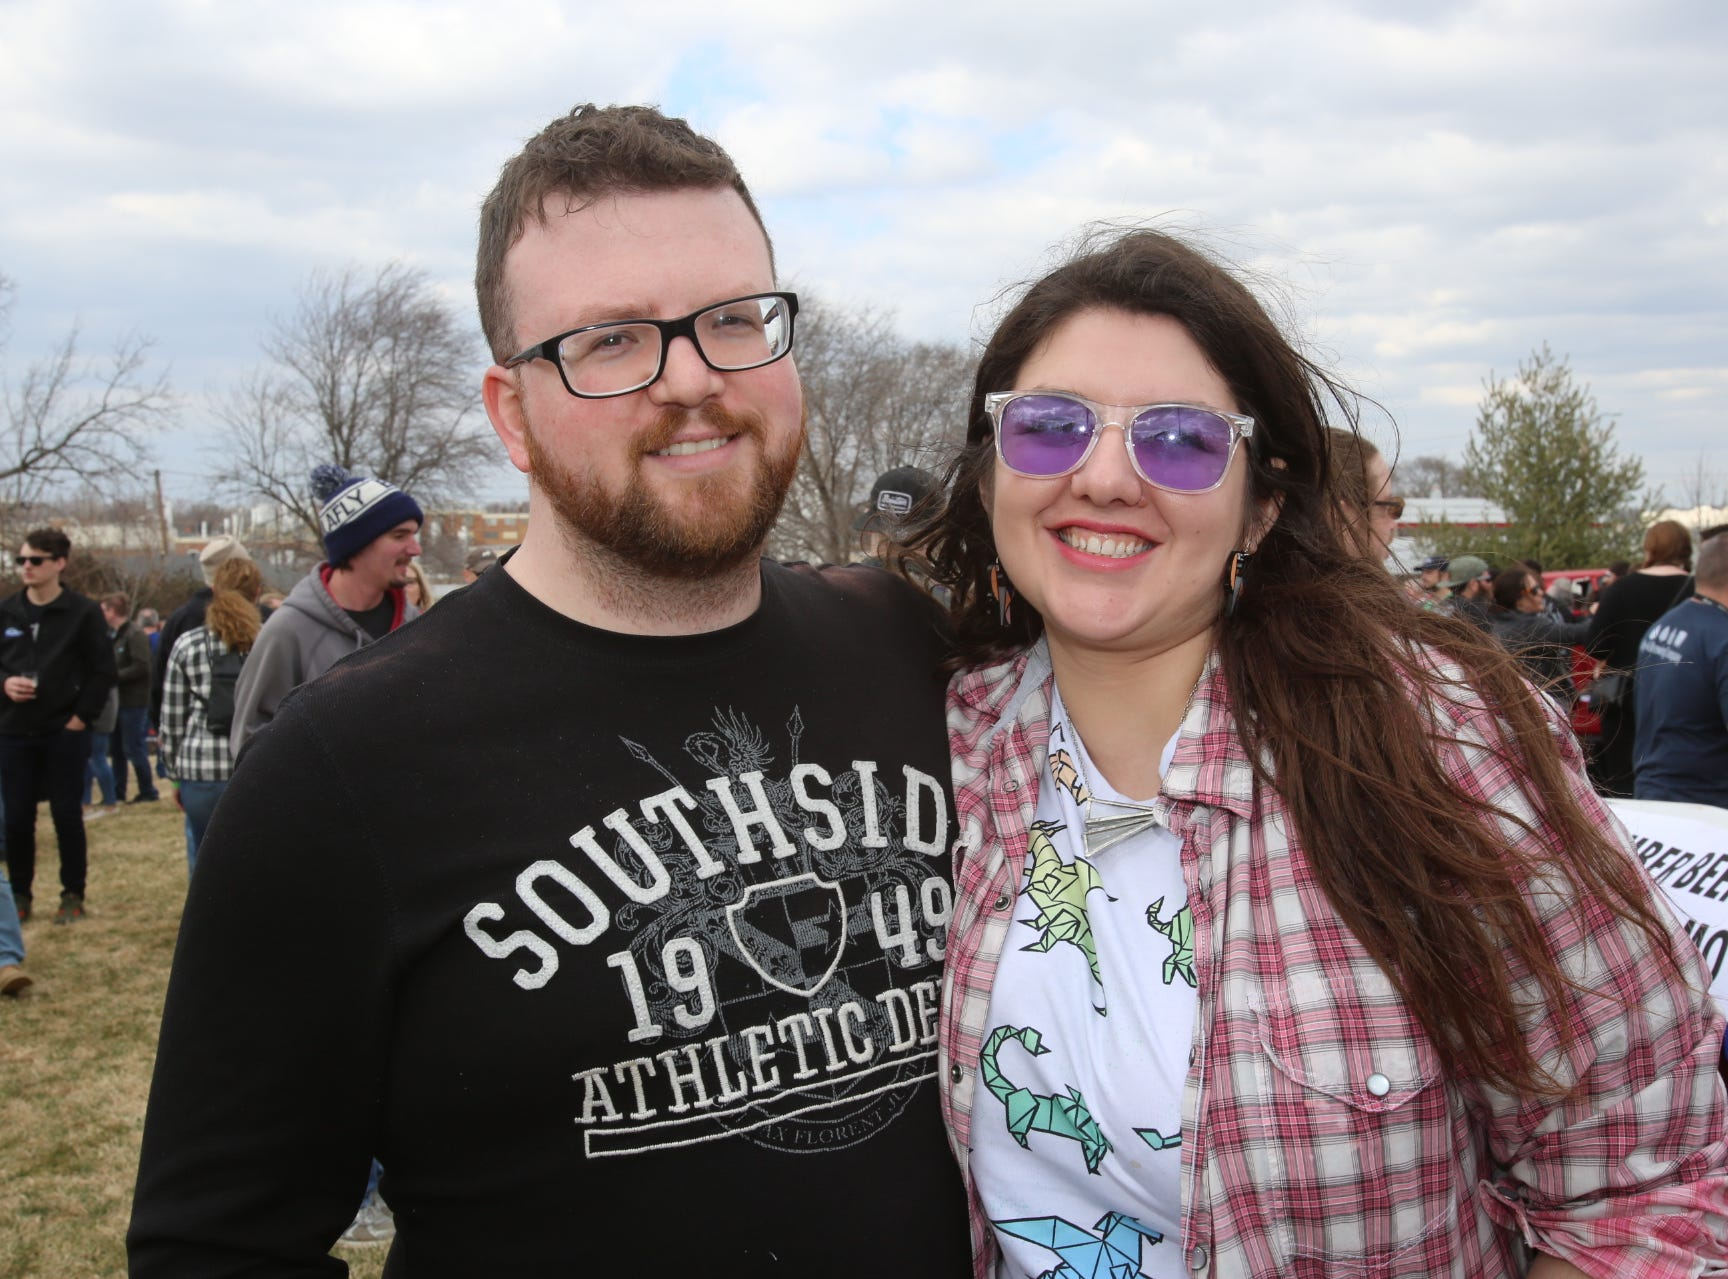 Matthew Busnell and Colleen Gilday